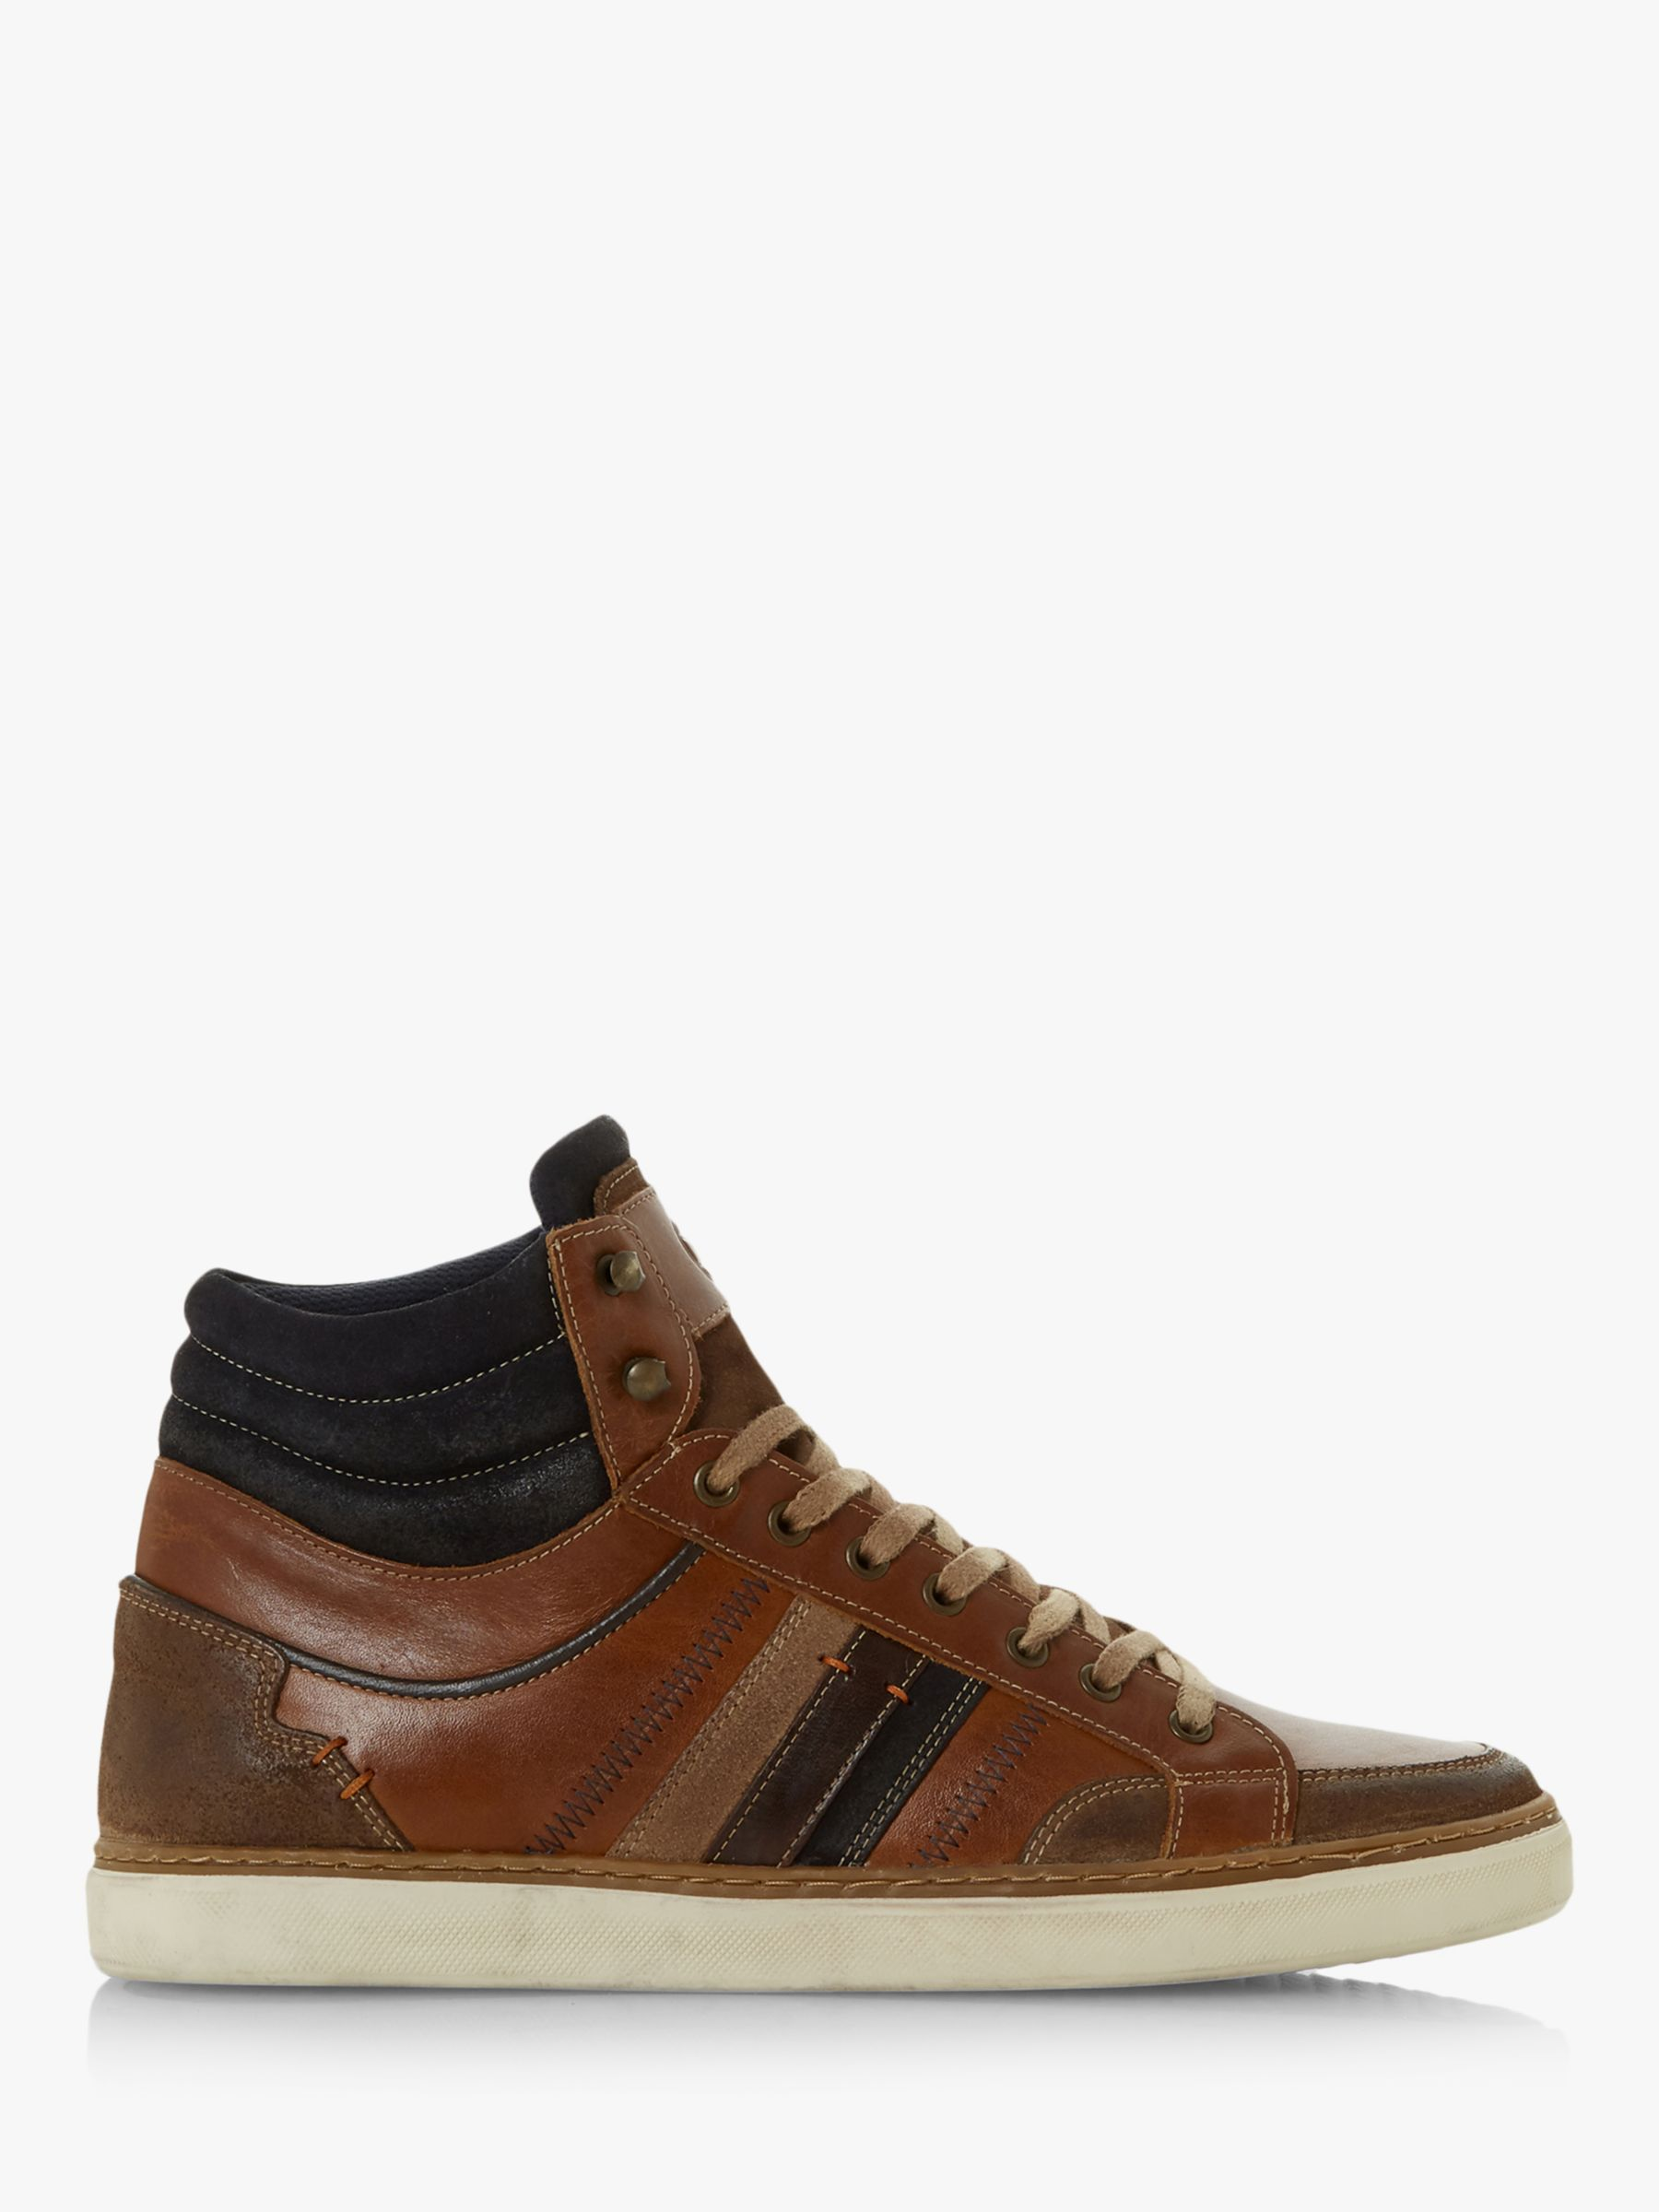 Dune Dune Vernonn High Top Leather Trainers, Tan